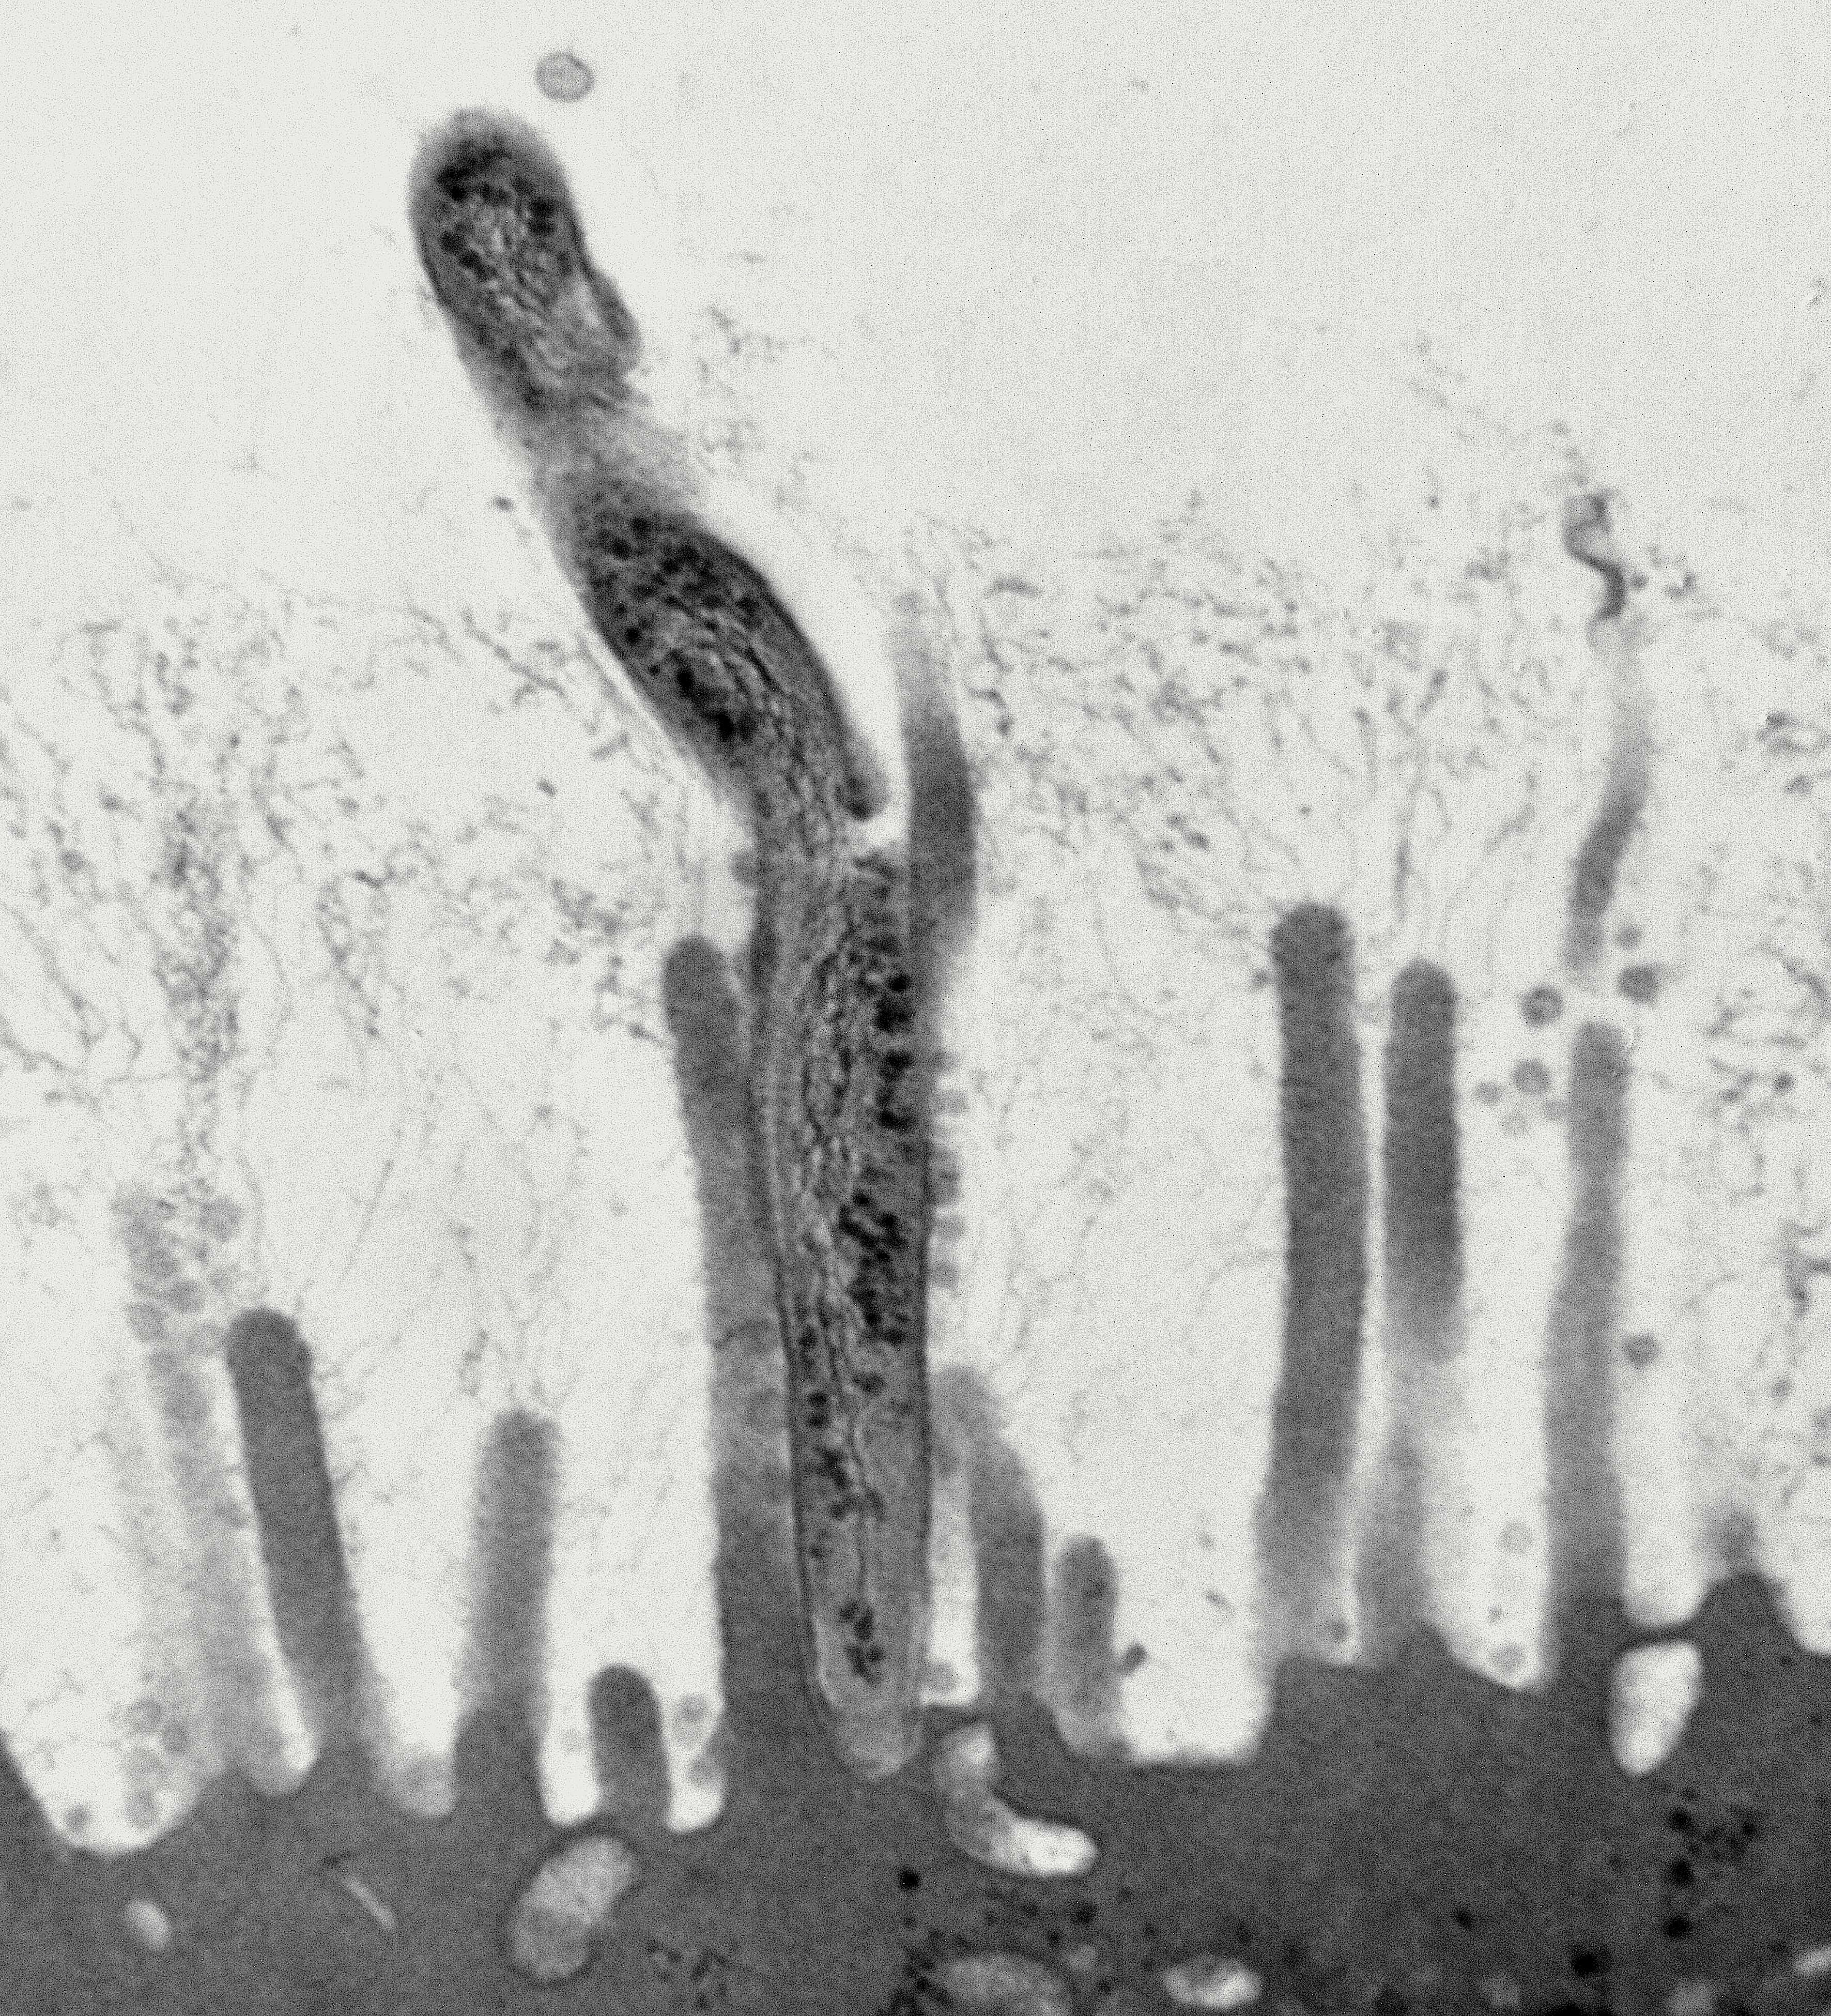 bacteria interacting with microvilli